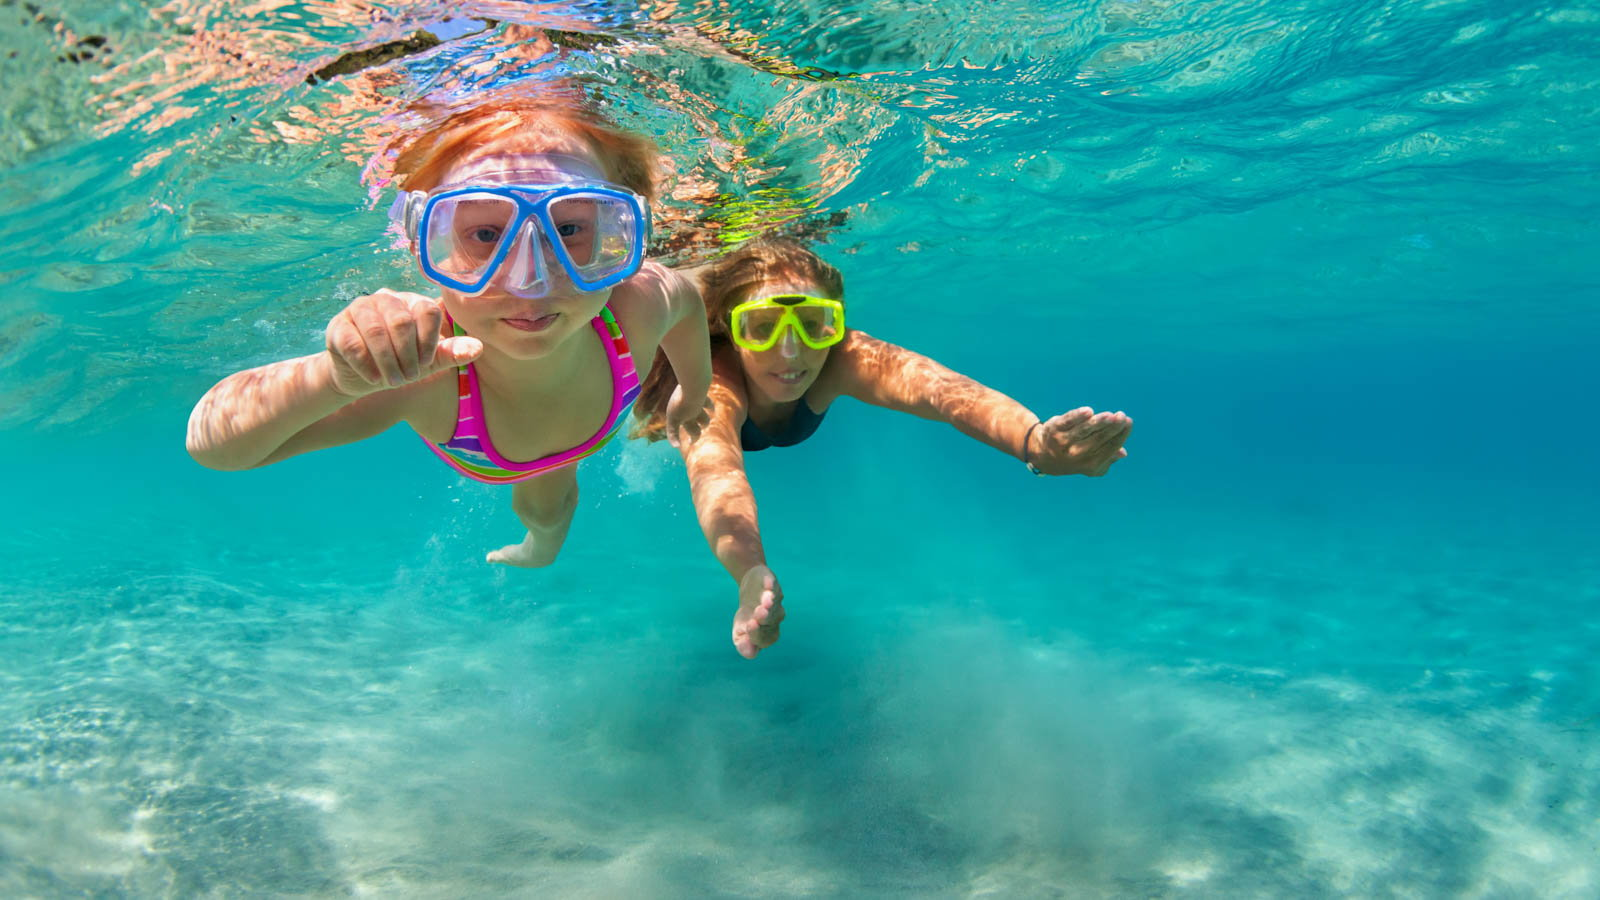 mom and child swimming with goggles on